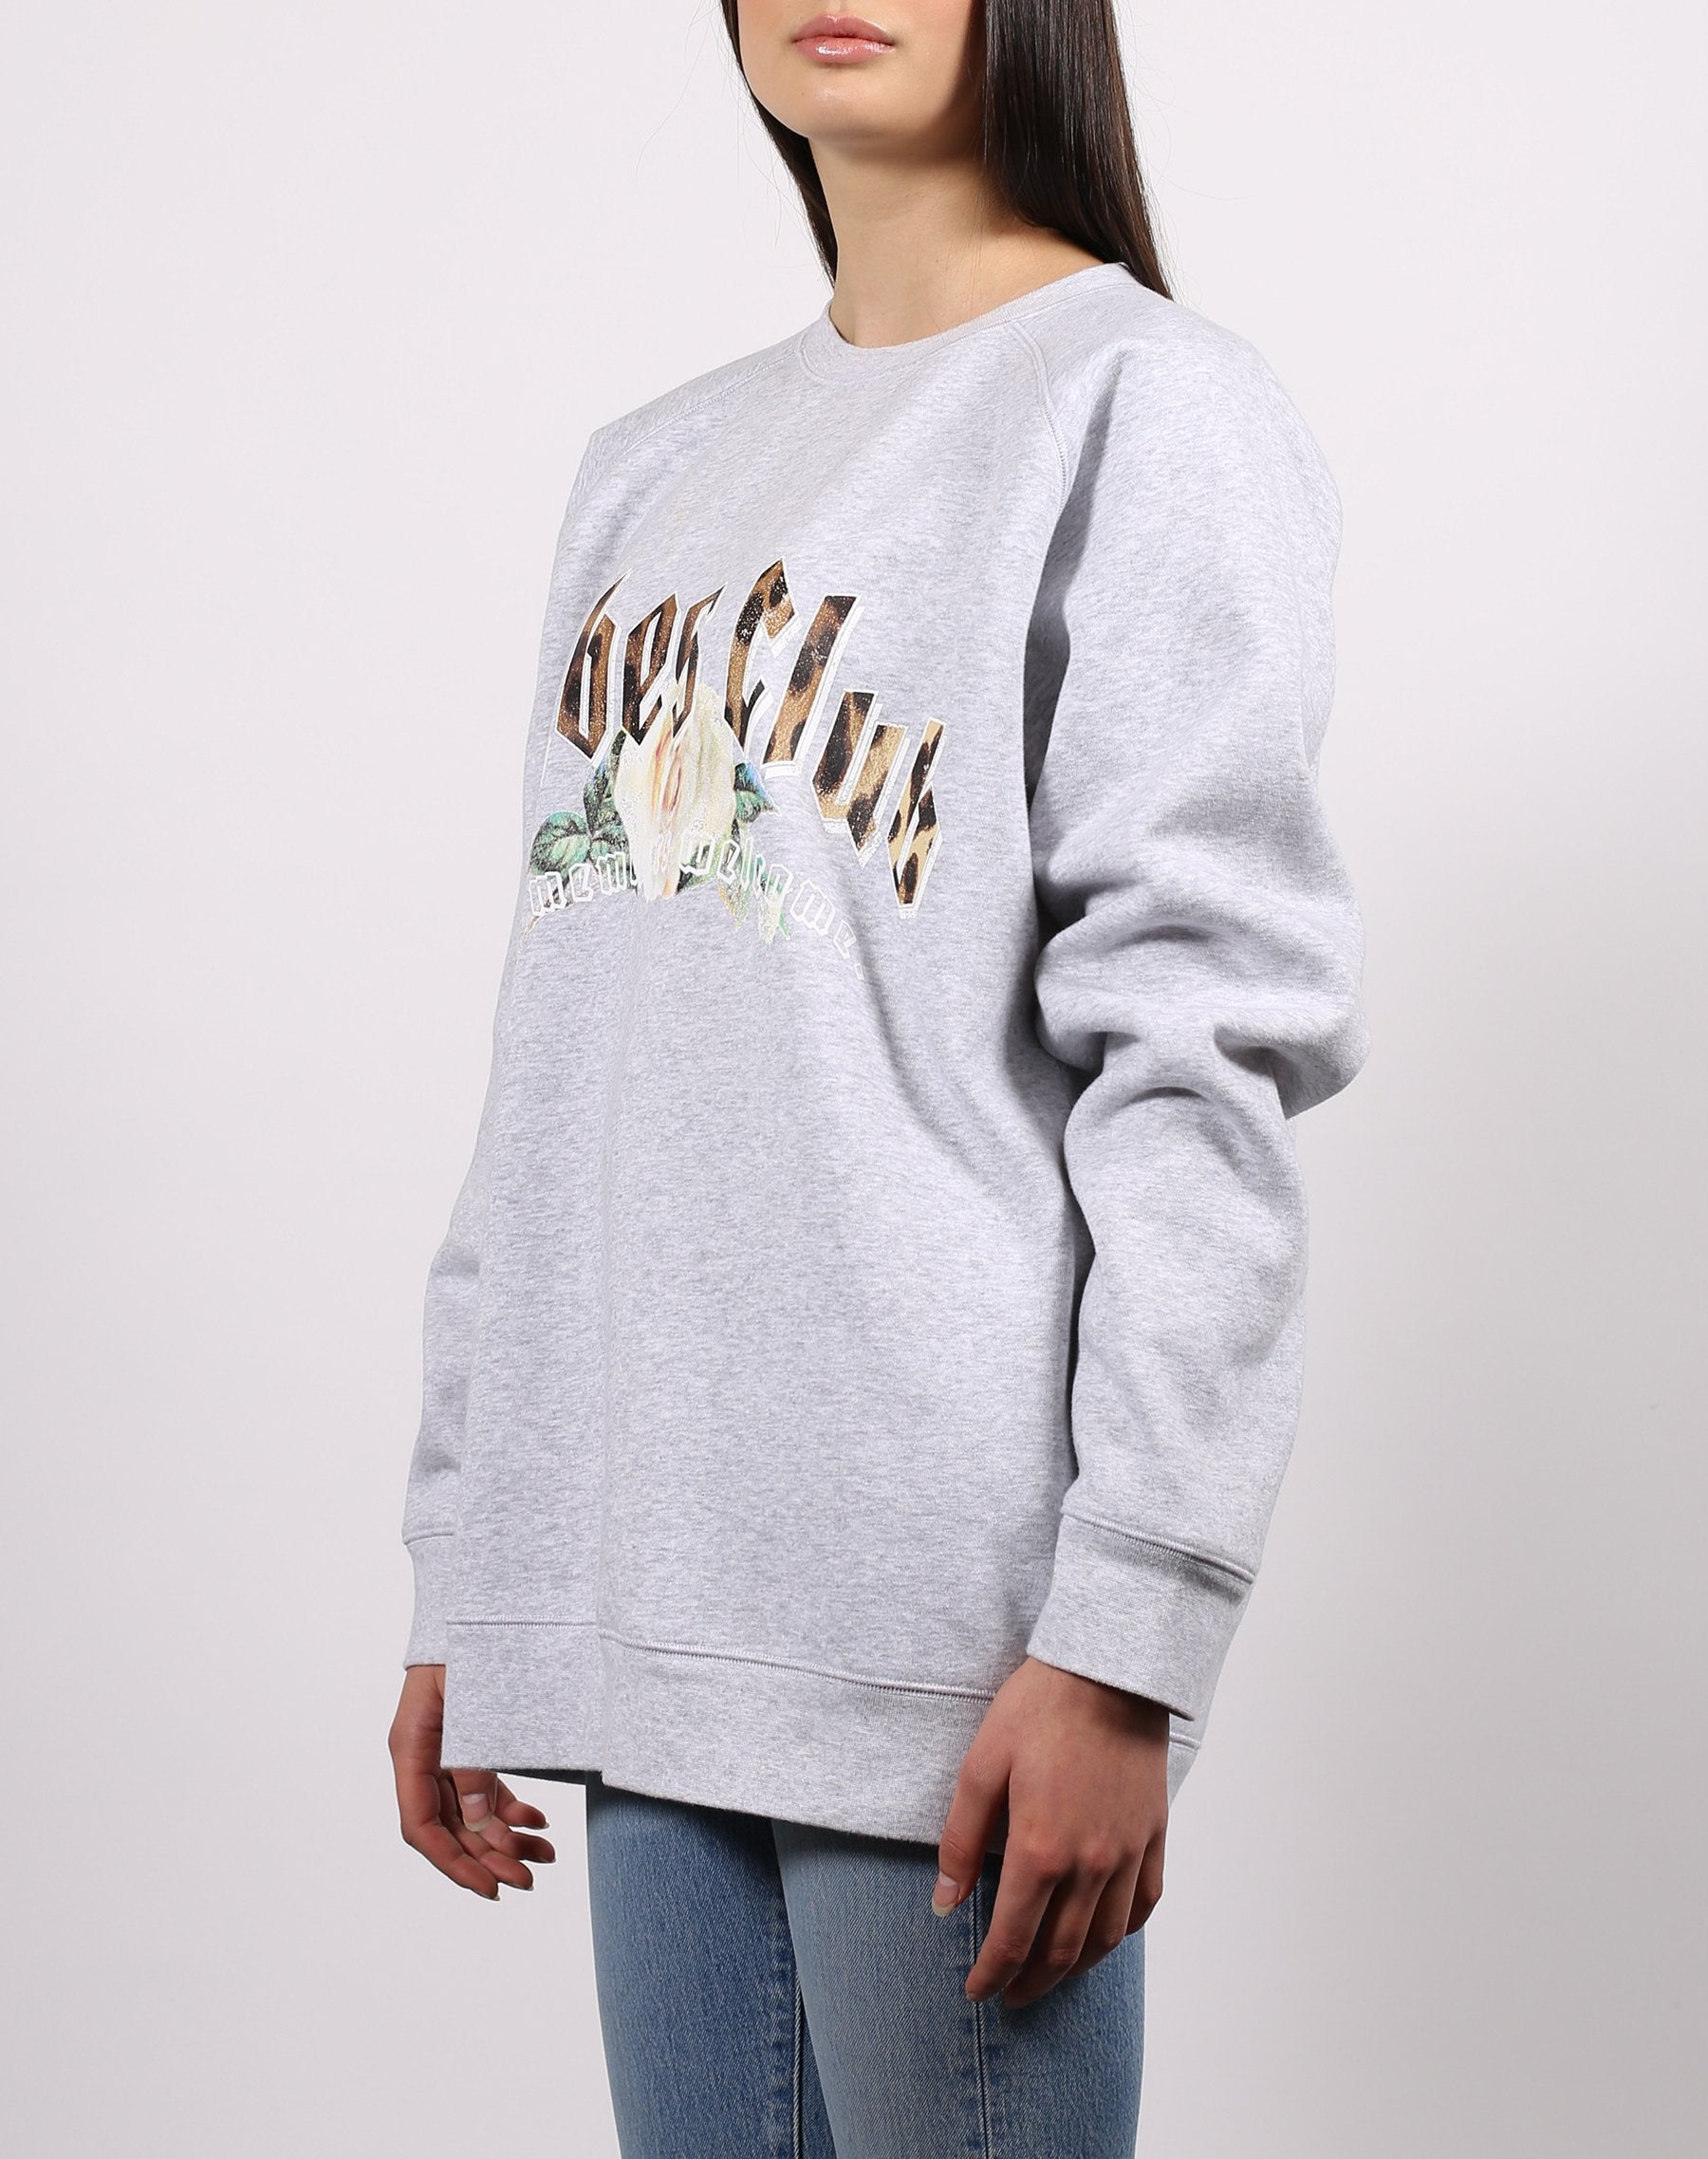 this is a photo of the side of the babes club big sister crew neck sweatshirt in pebble grey from the 1981 collection